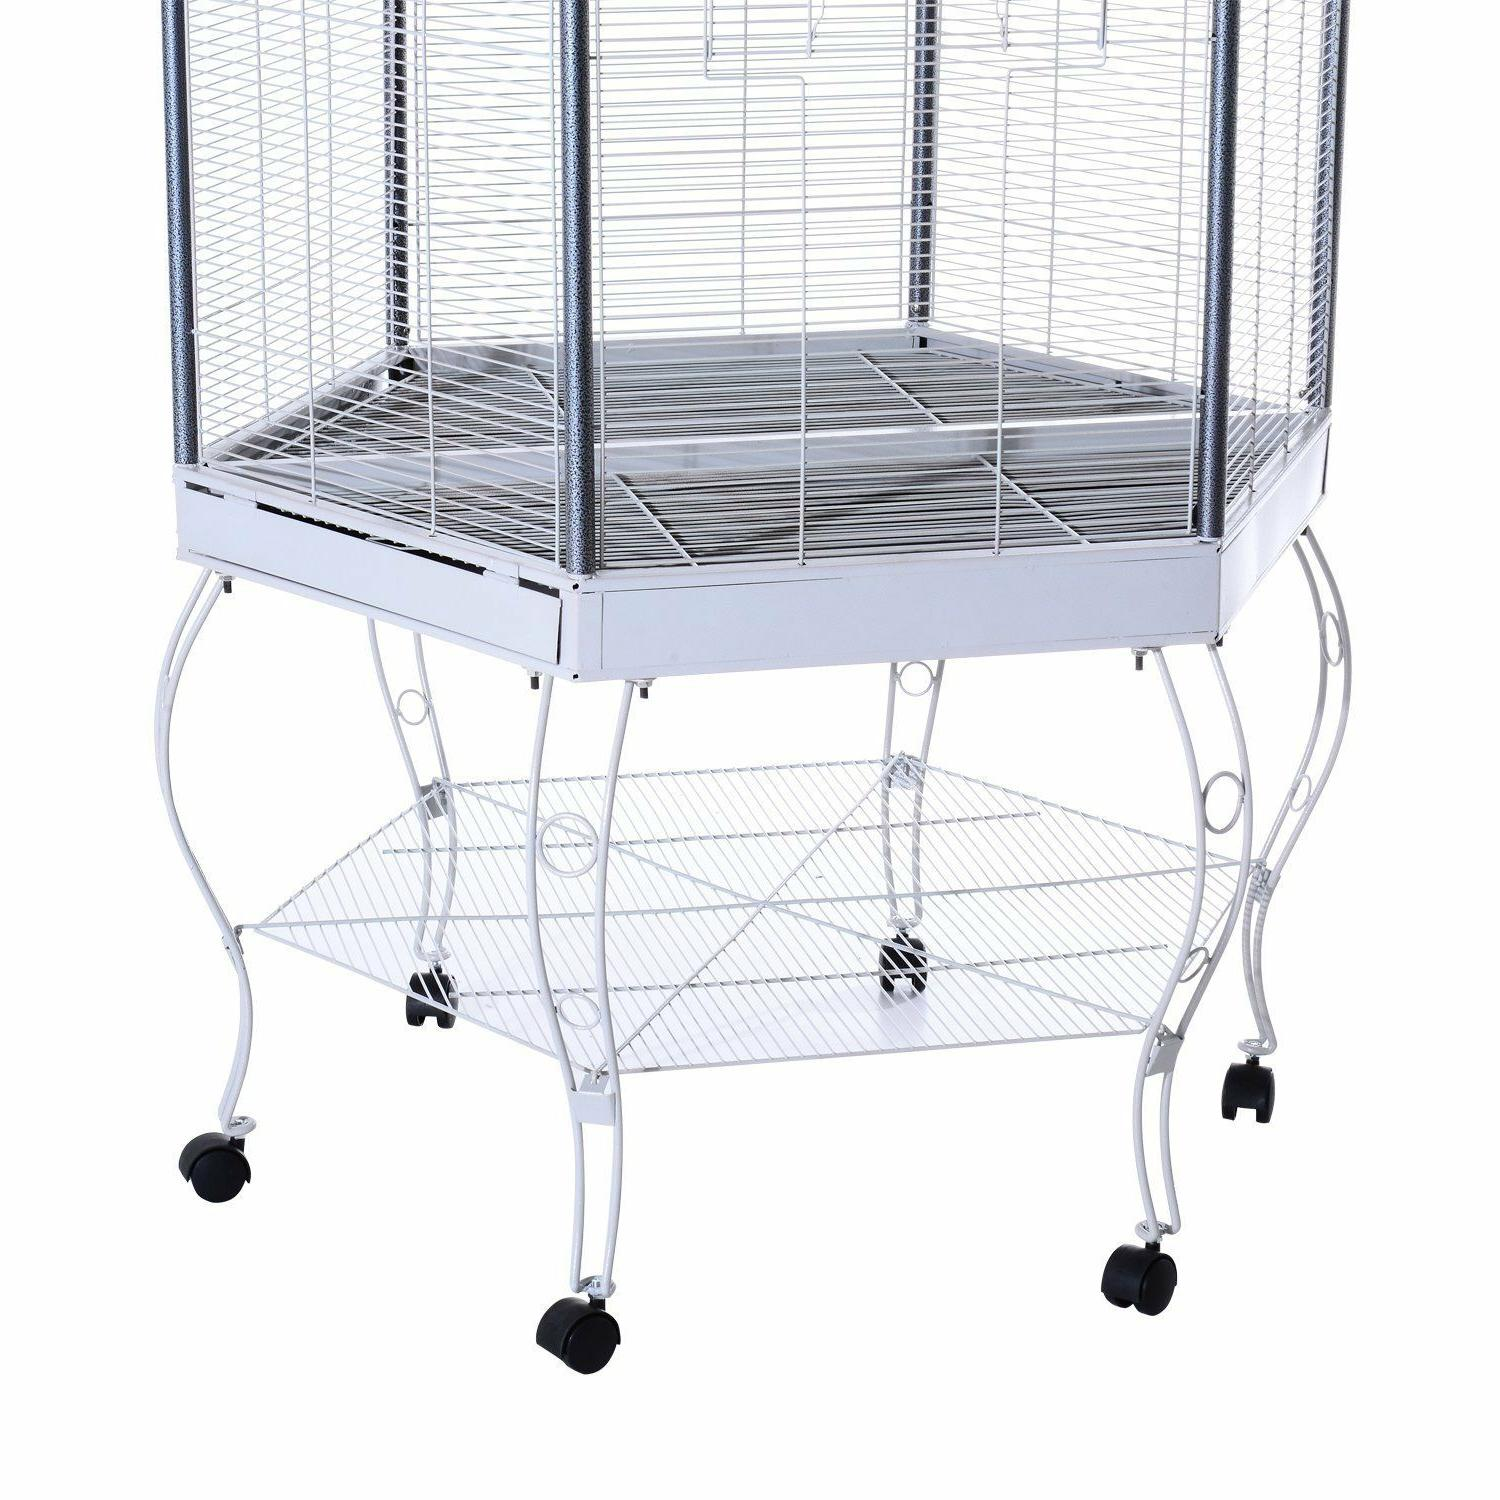 large bird cage Parrot outdoor stand house